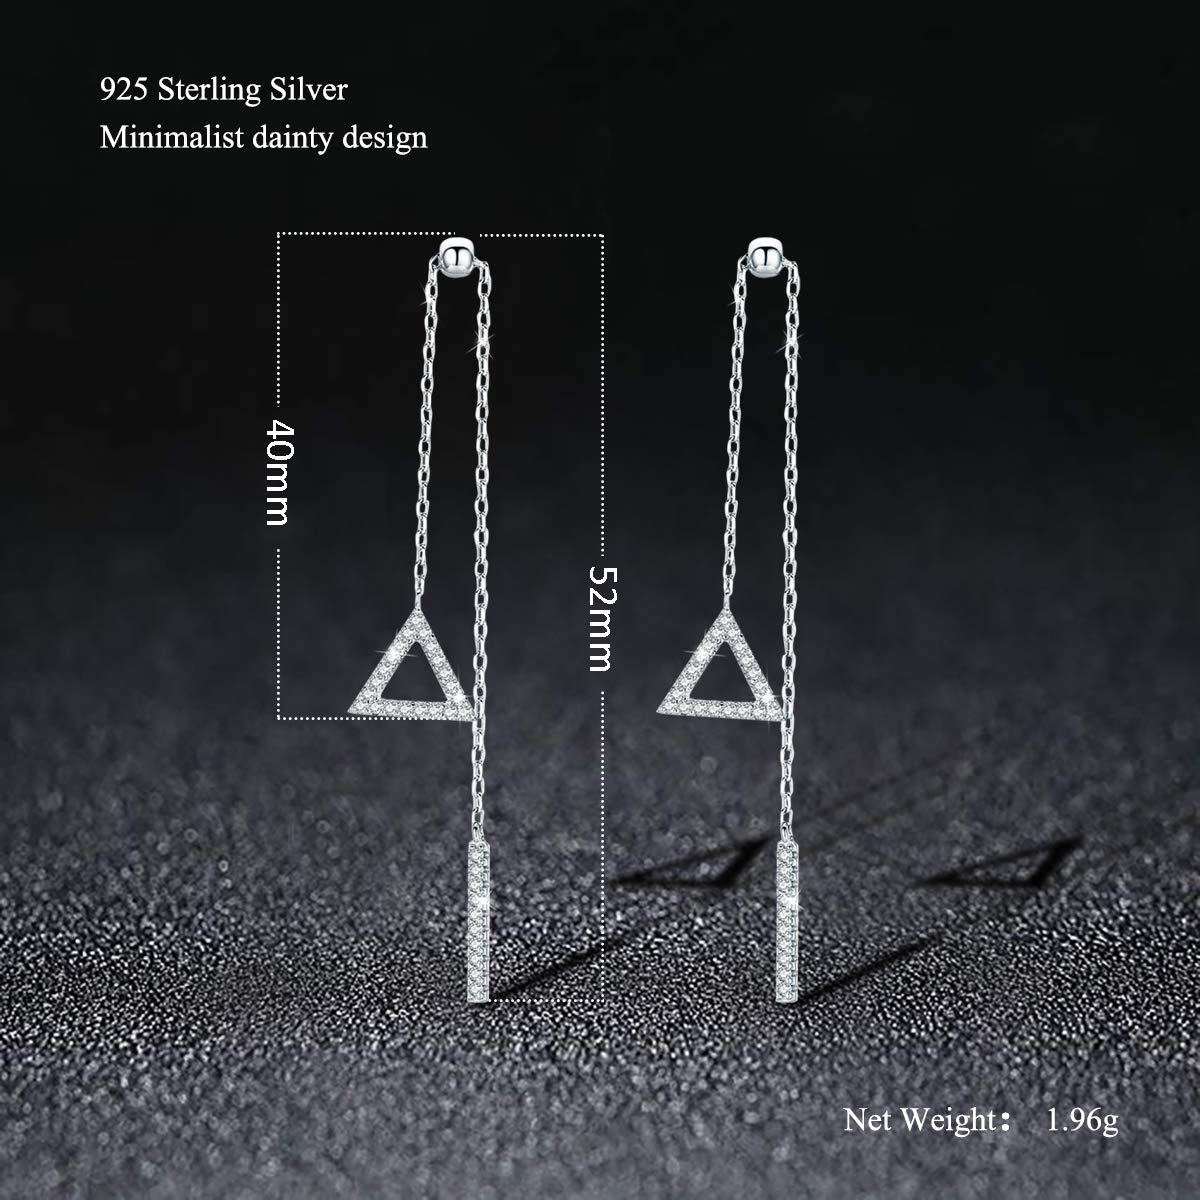 SIMPLOVE 925 Sterling Silver Triangle Vertical Bar Dangle Earrings for Women Asymmetrical Girl/'s Gift Jewelry